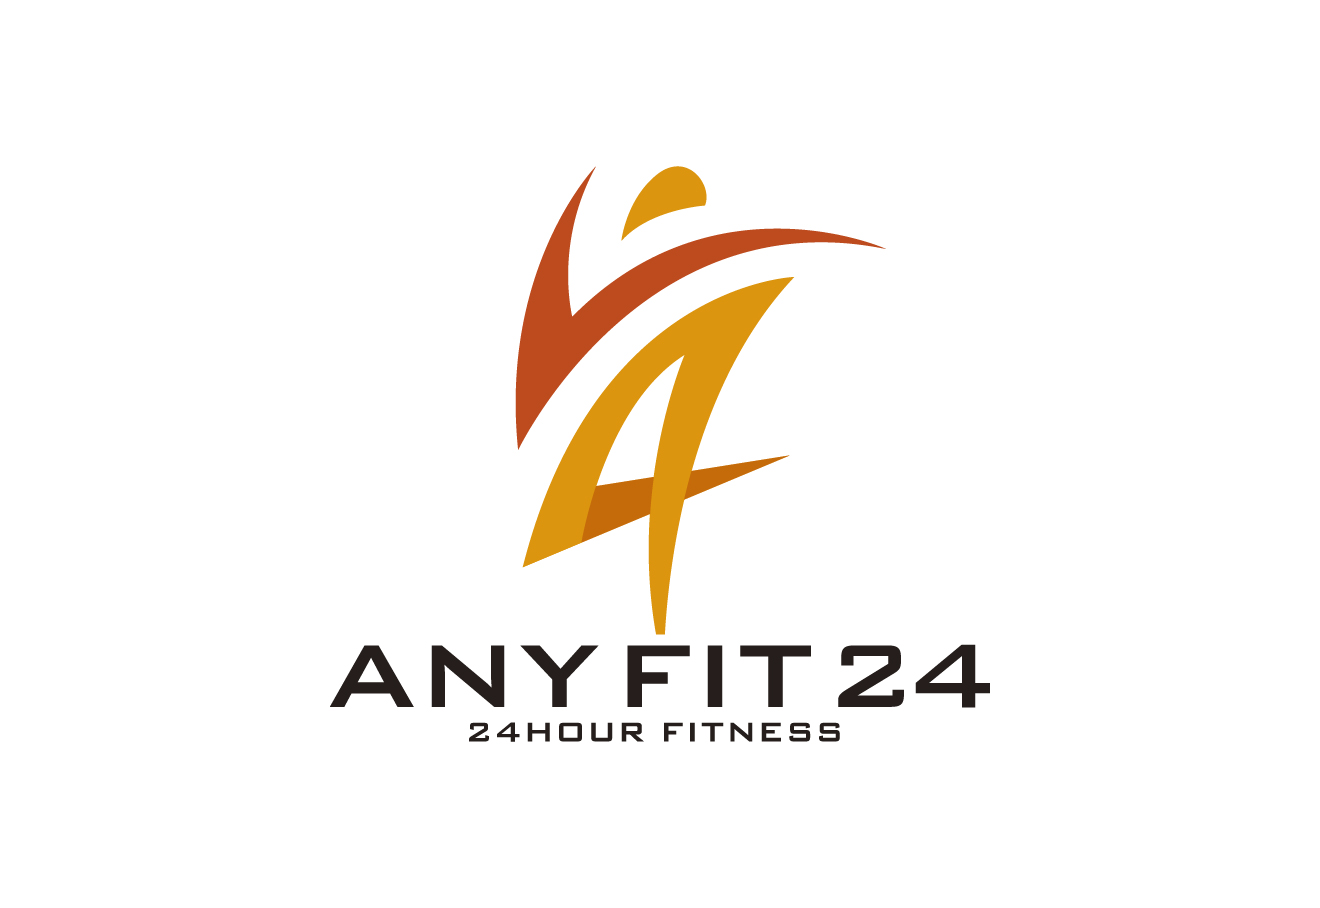 Any Fit 24